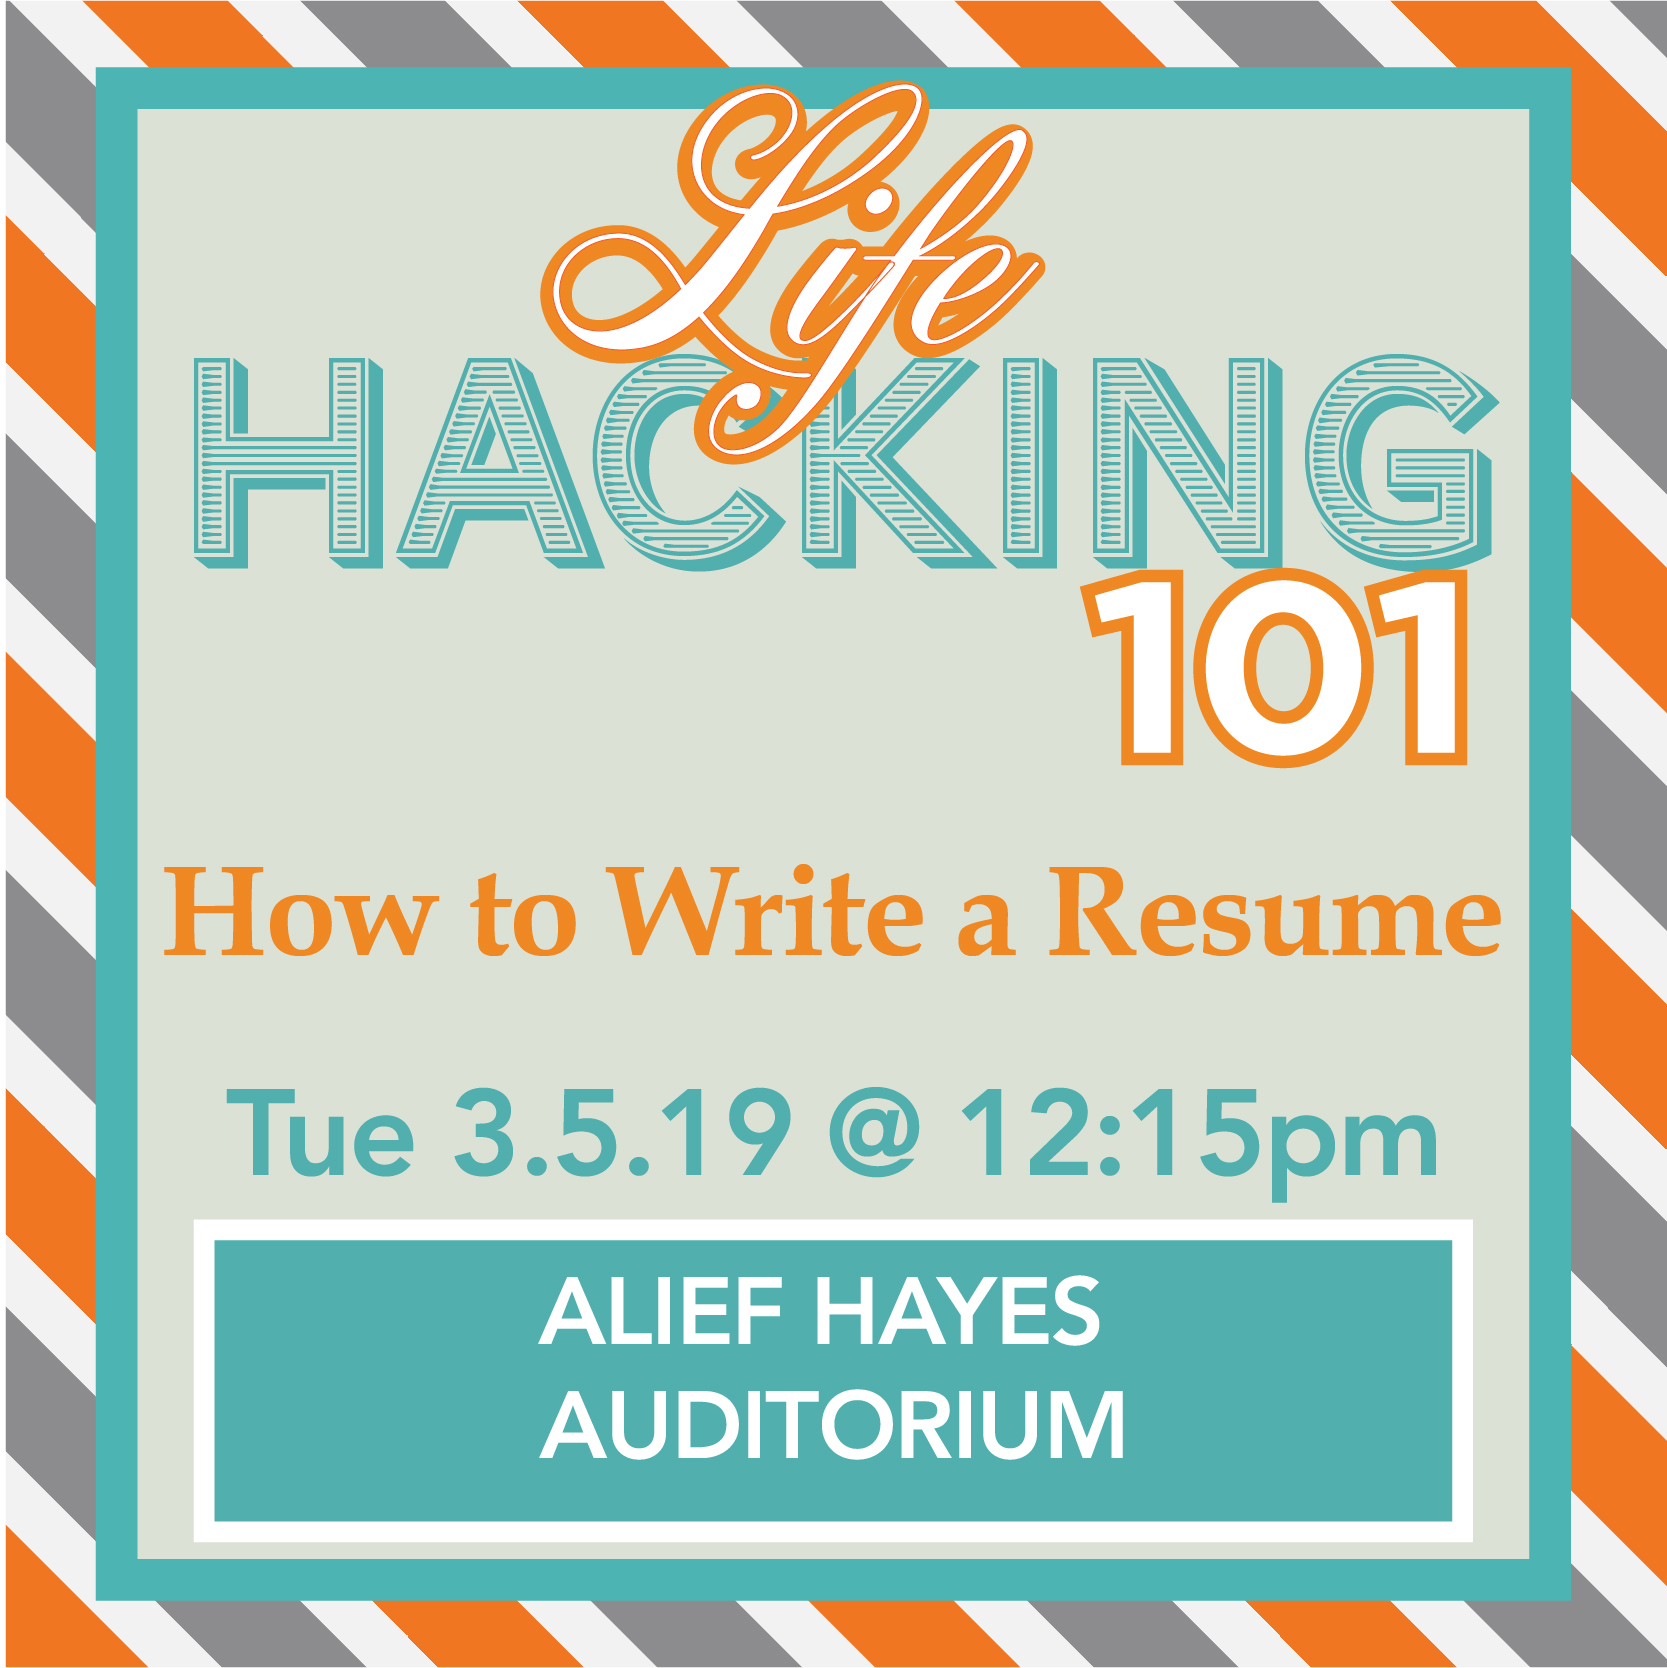 [AH] Lifehacking 101: How to Write a Resume